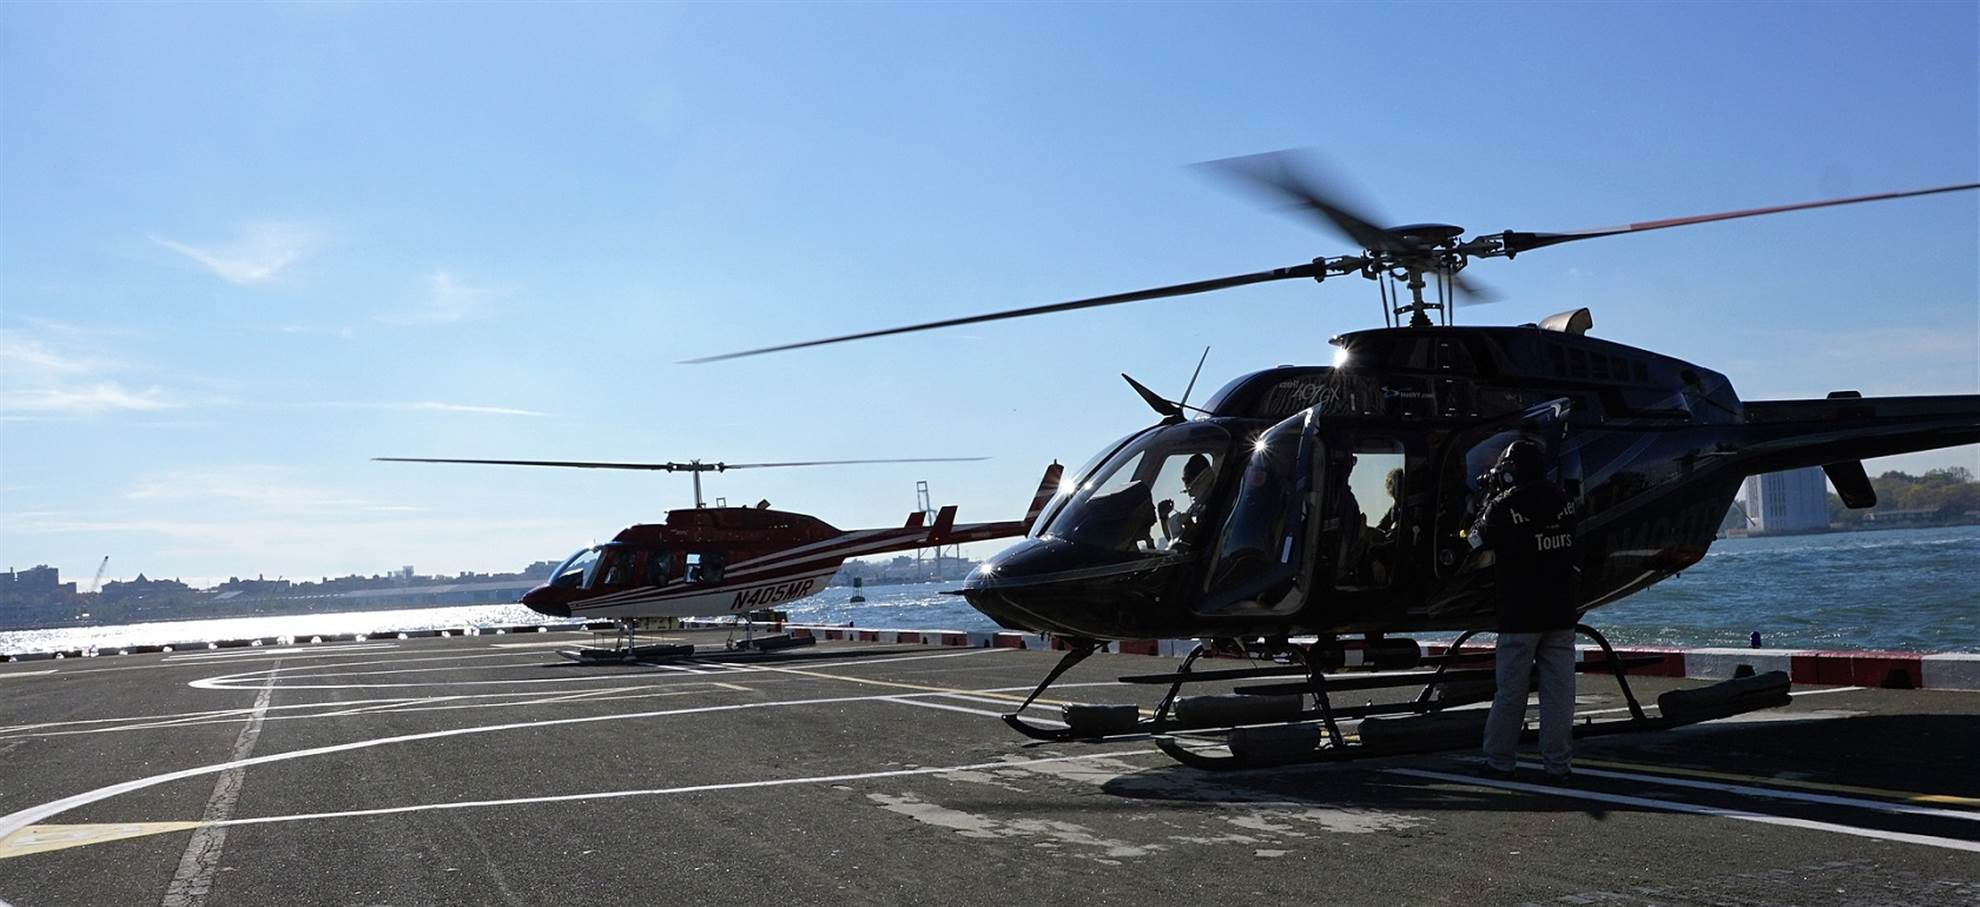 Tours Liberty Helicopter – La Grande Pomme